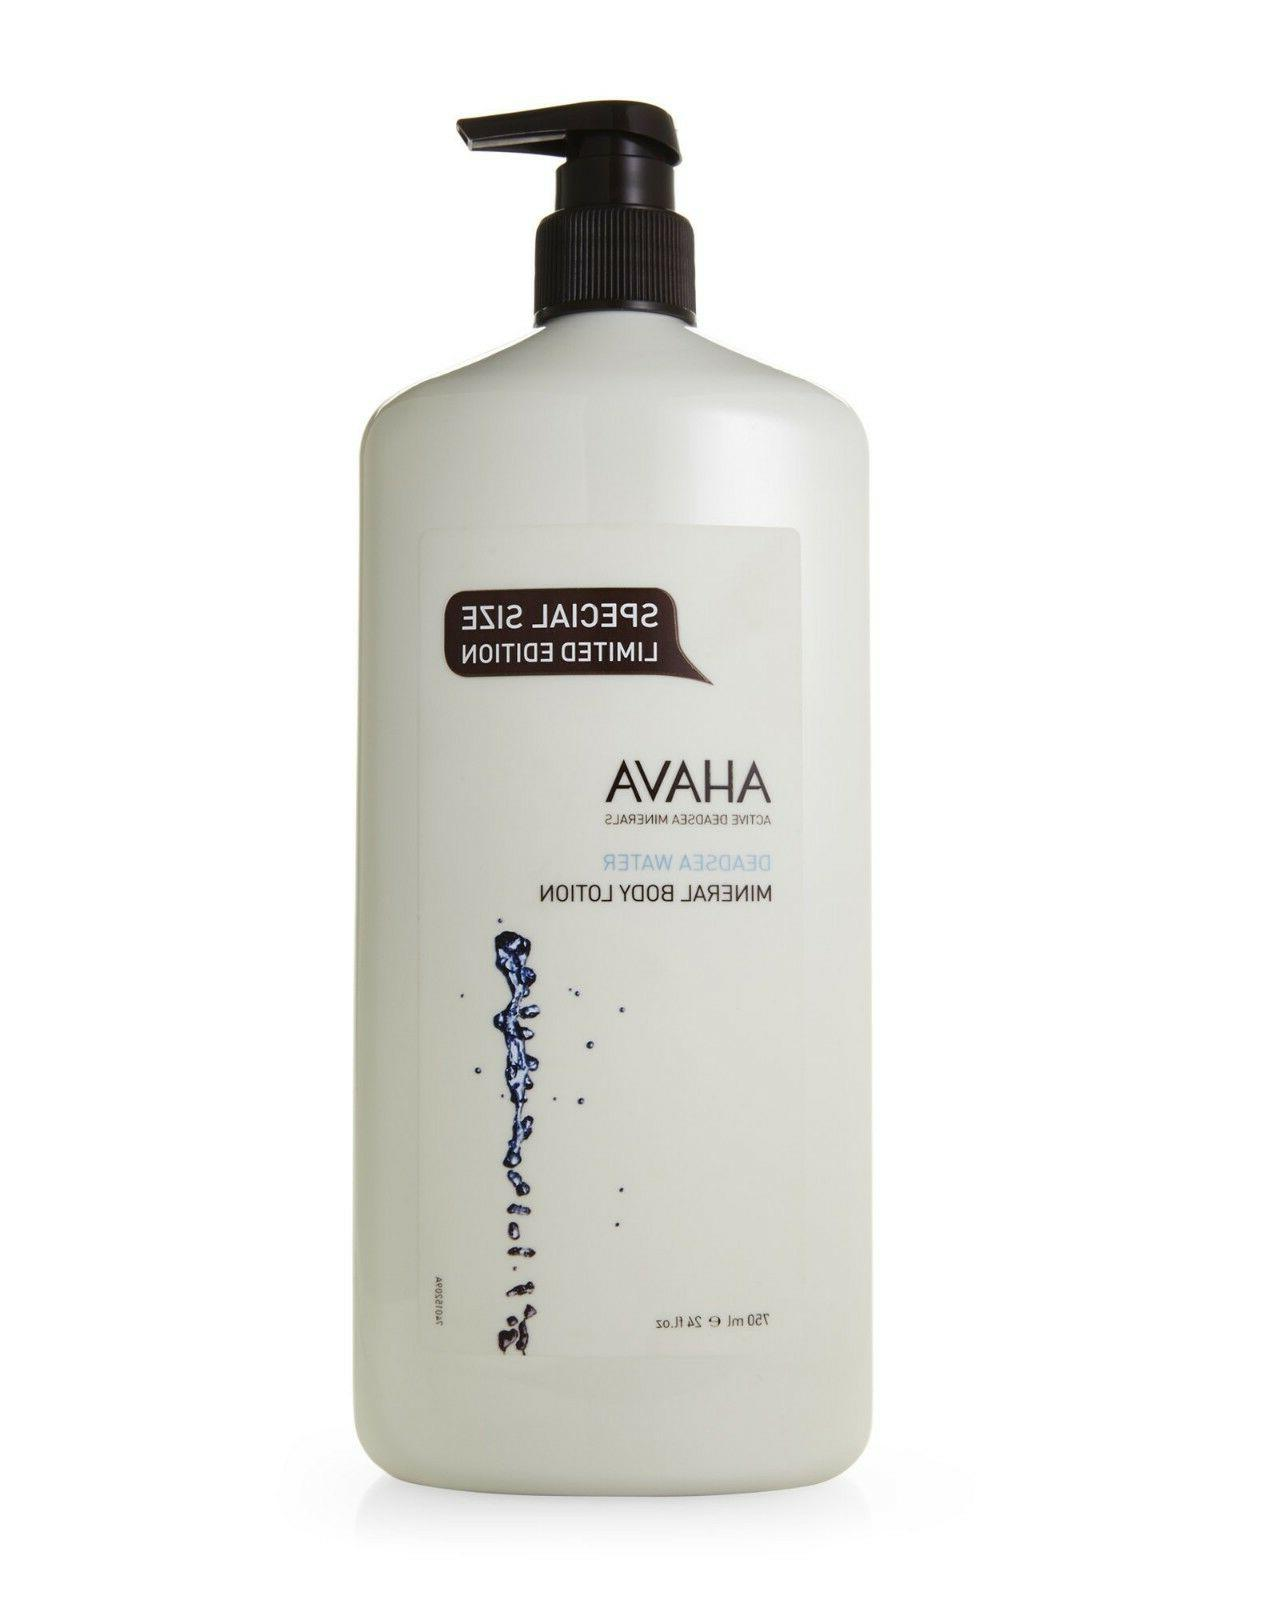 AHAVA WATER MINERAL BODY 750ml EDITION SIZE!